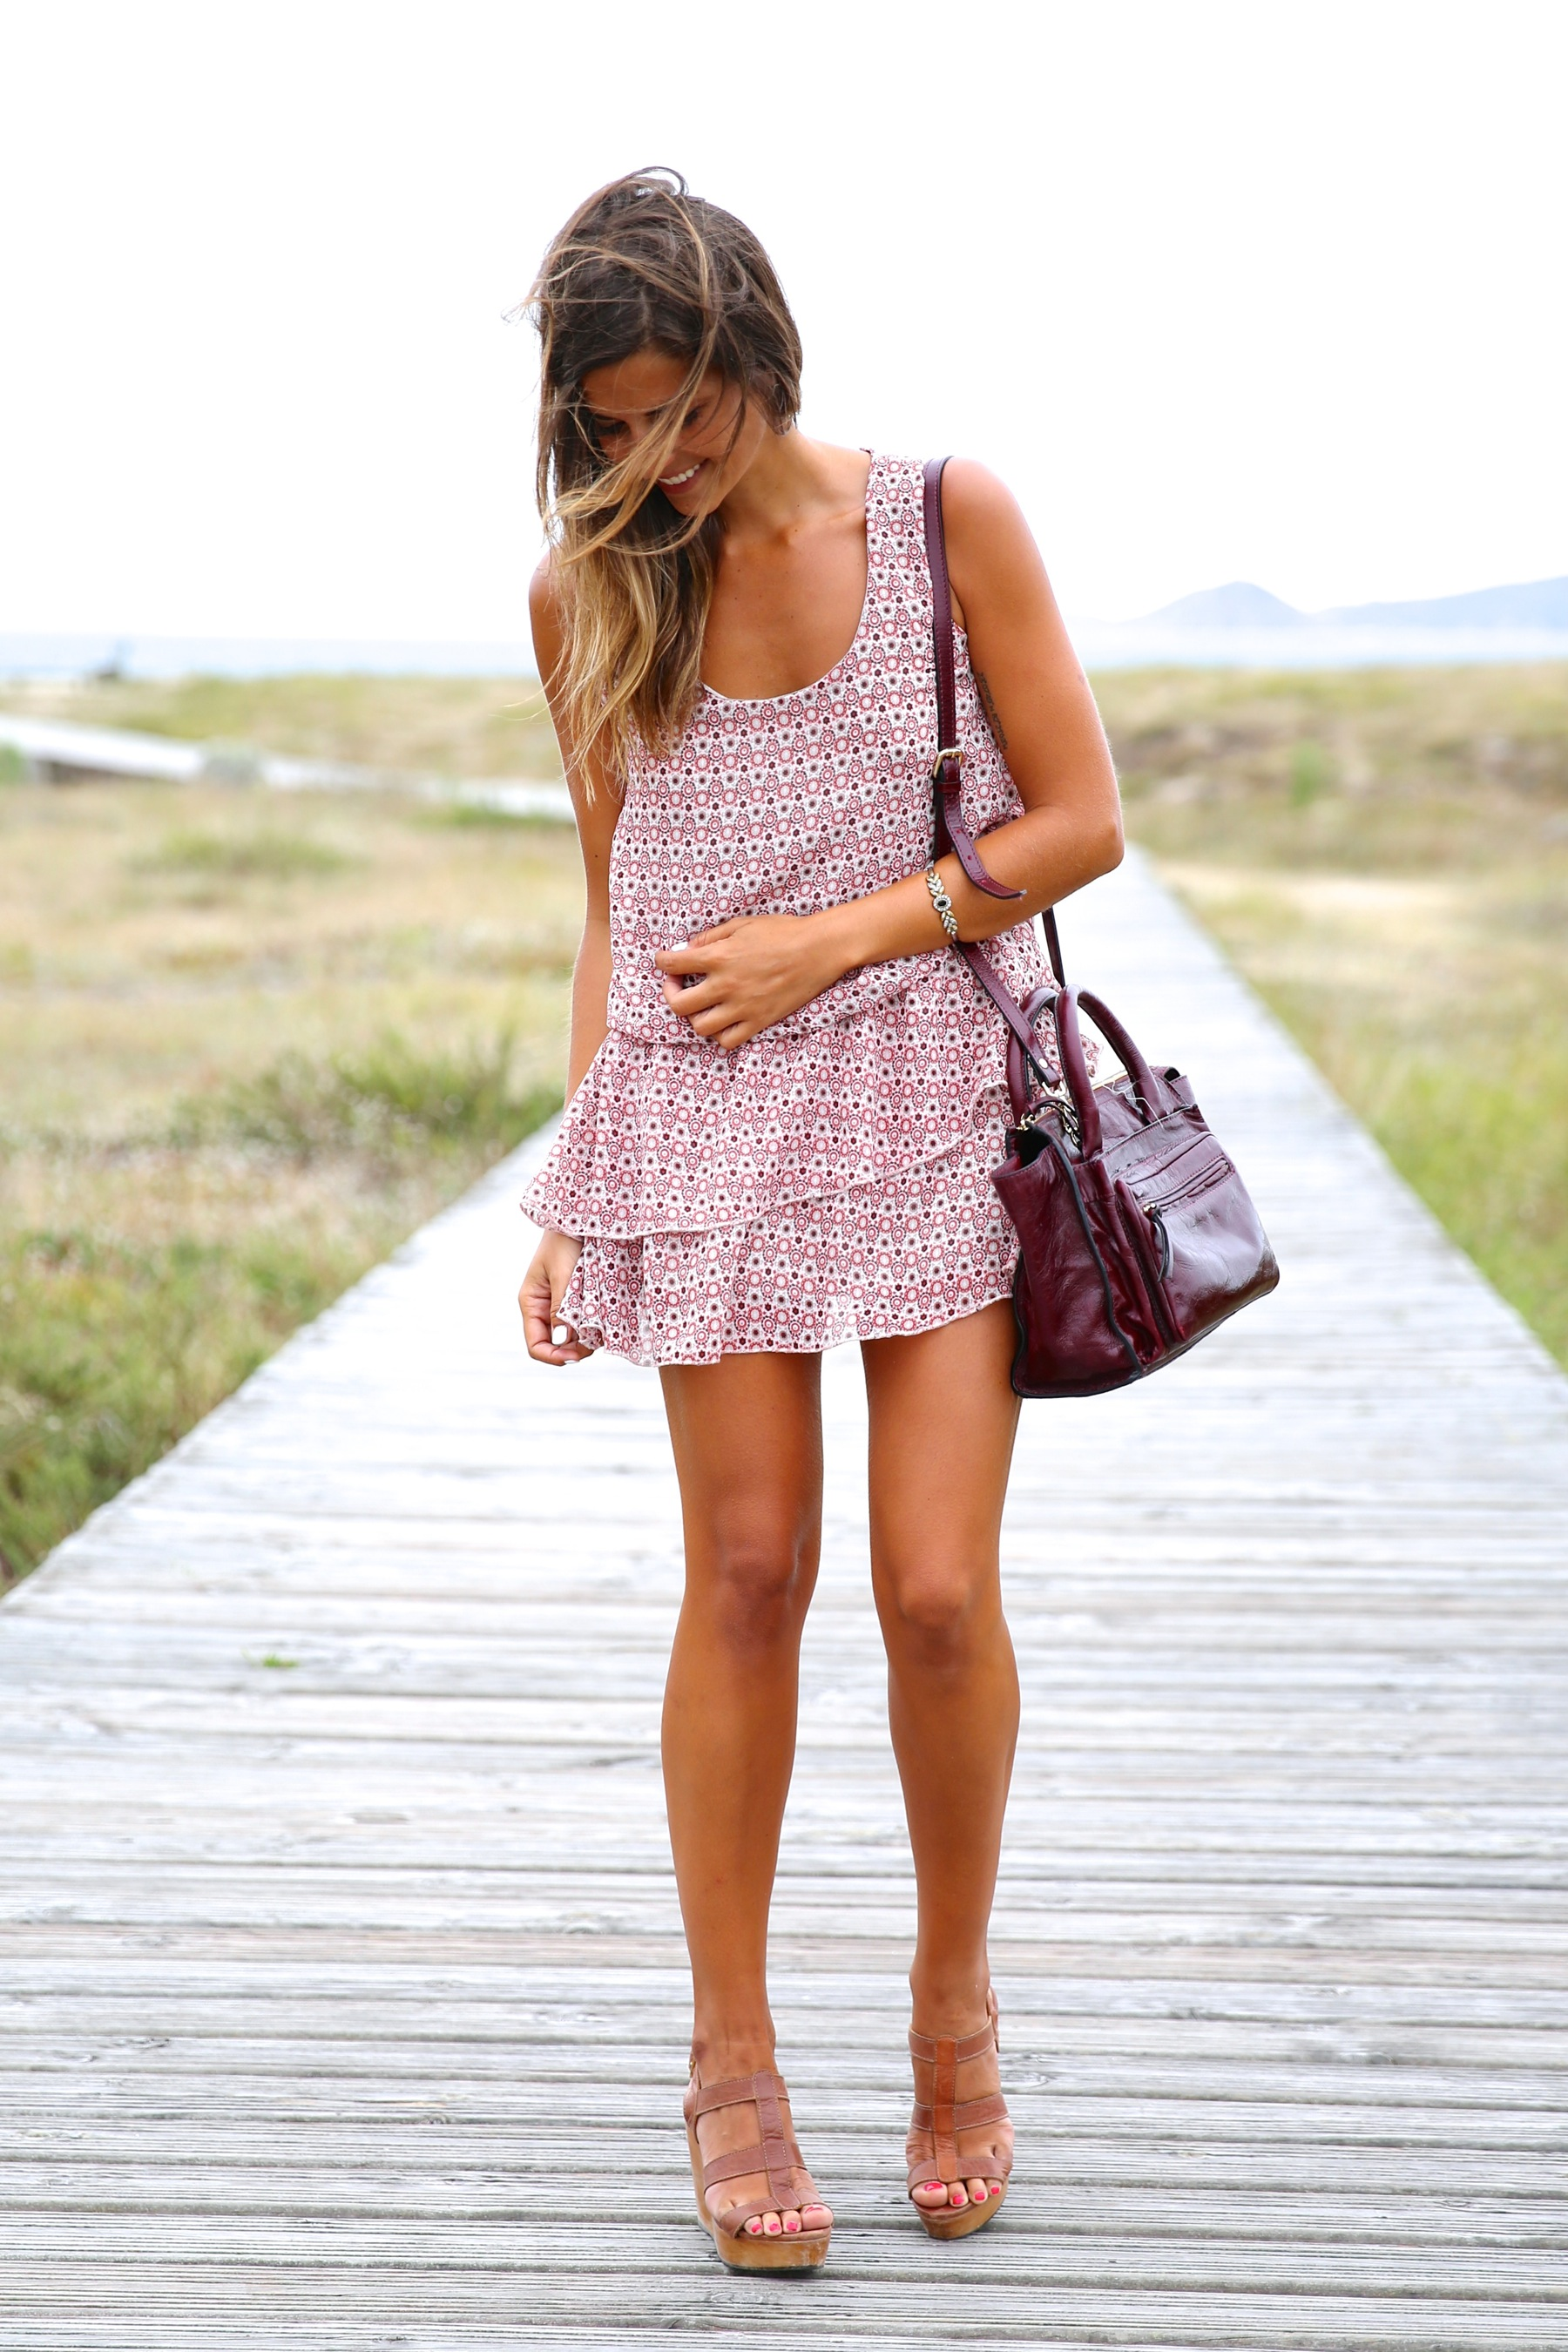 trendy_taste-look-outfit-street_style-ootd-blog-blogger-fashion_spain-moda_españa-boho-beach-playa-galicia-vestido-dress-sandalias-sandals-9